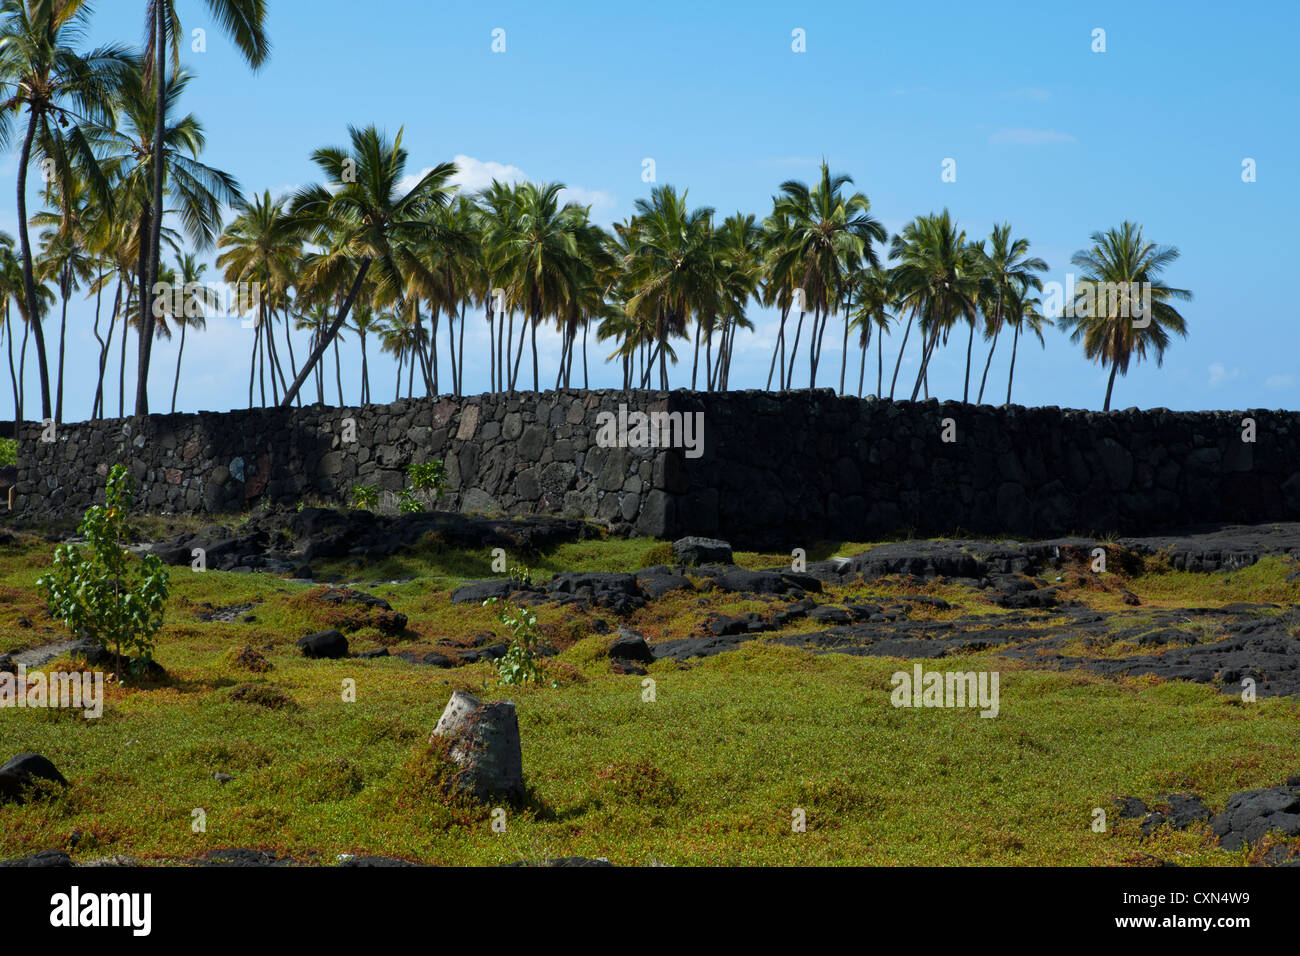 A heiau is a Hawaiian temple to treat the sick, offer first fruits, first catch, start rain, stop rain... - Stock Image